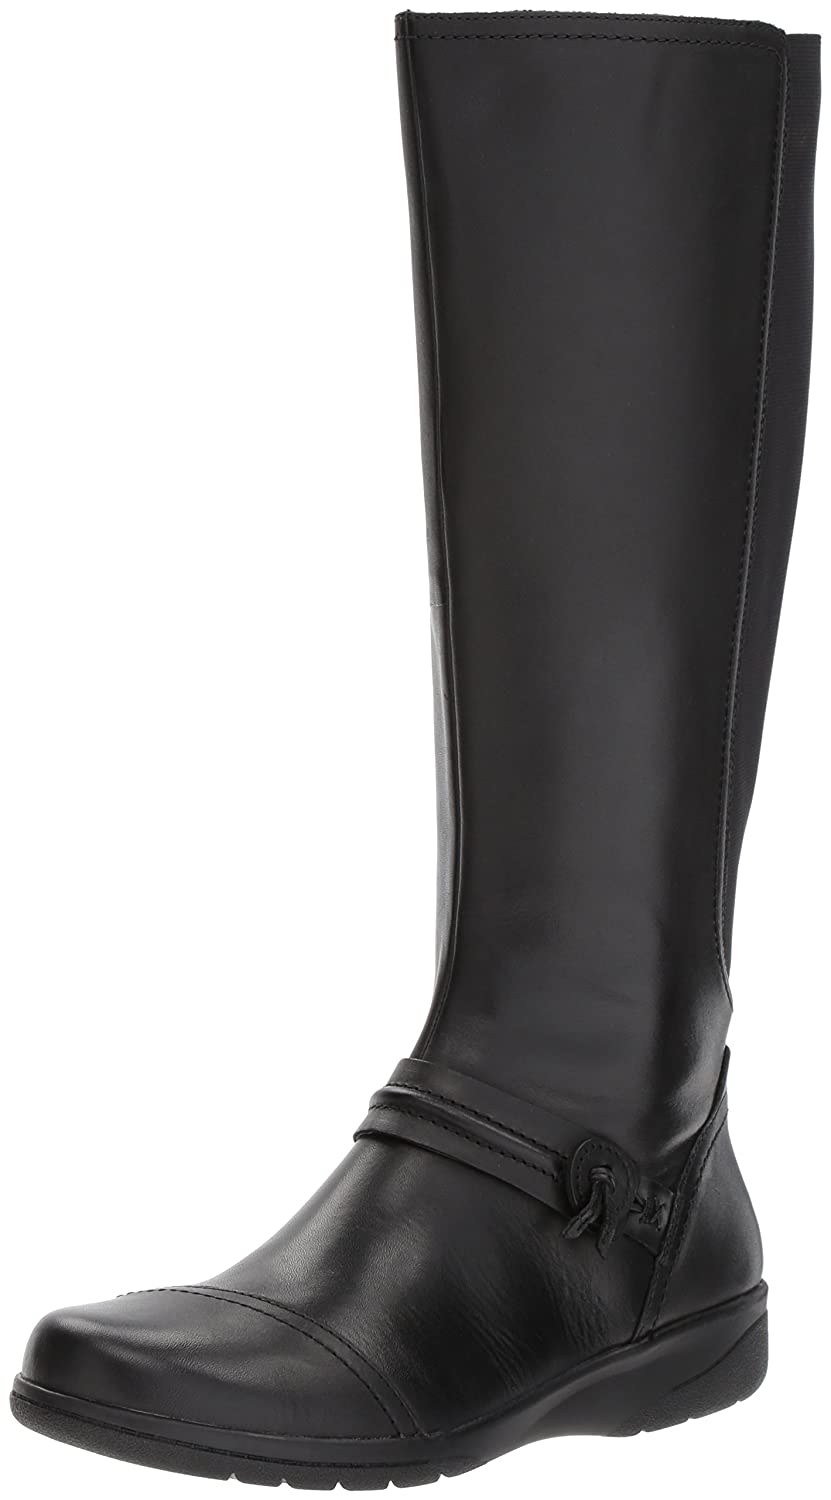 CLARKS Women's Cheyn Whisk Riding Boot B01MR31C98 6.5 W US|Black